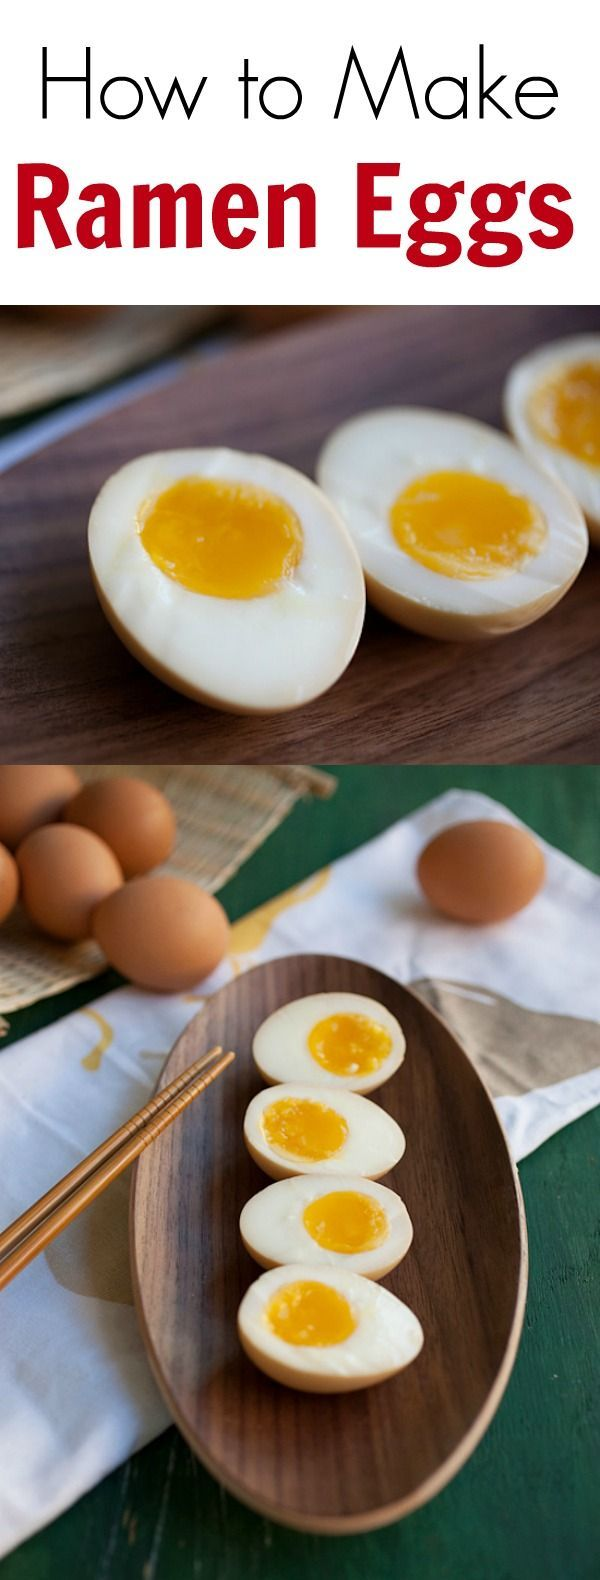 How to make Ramen Eggs - gooey, soft, almost runny egg yolks, ramen eggs are the best. Learn the secret techniques | rasamalaysia.com